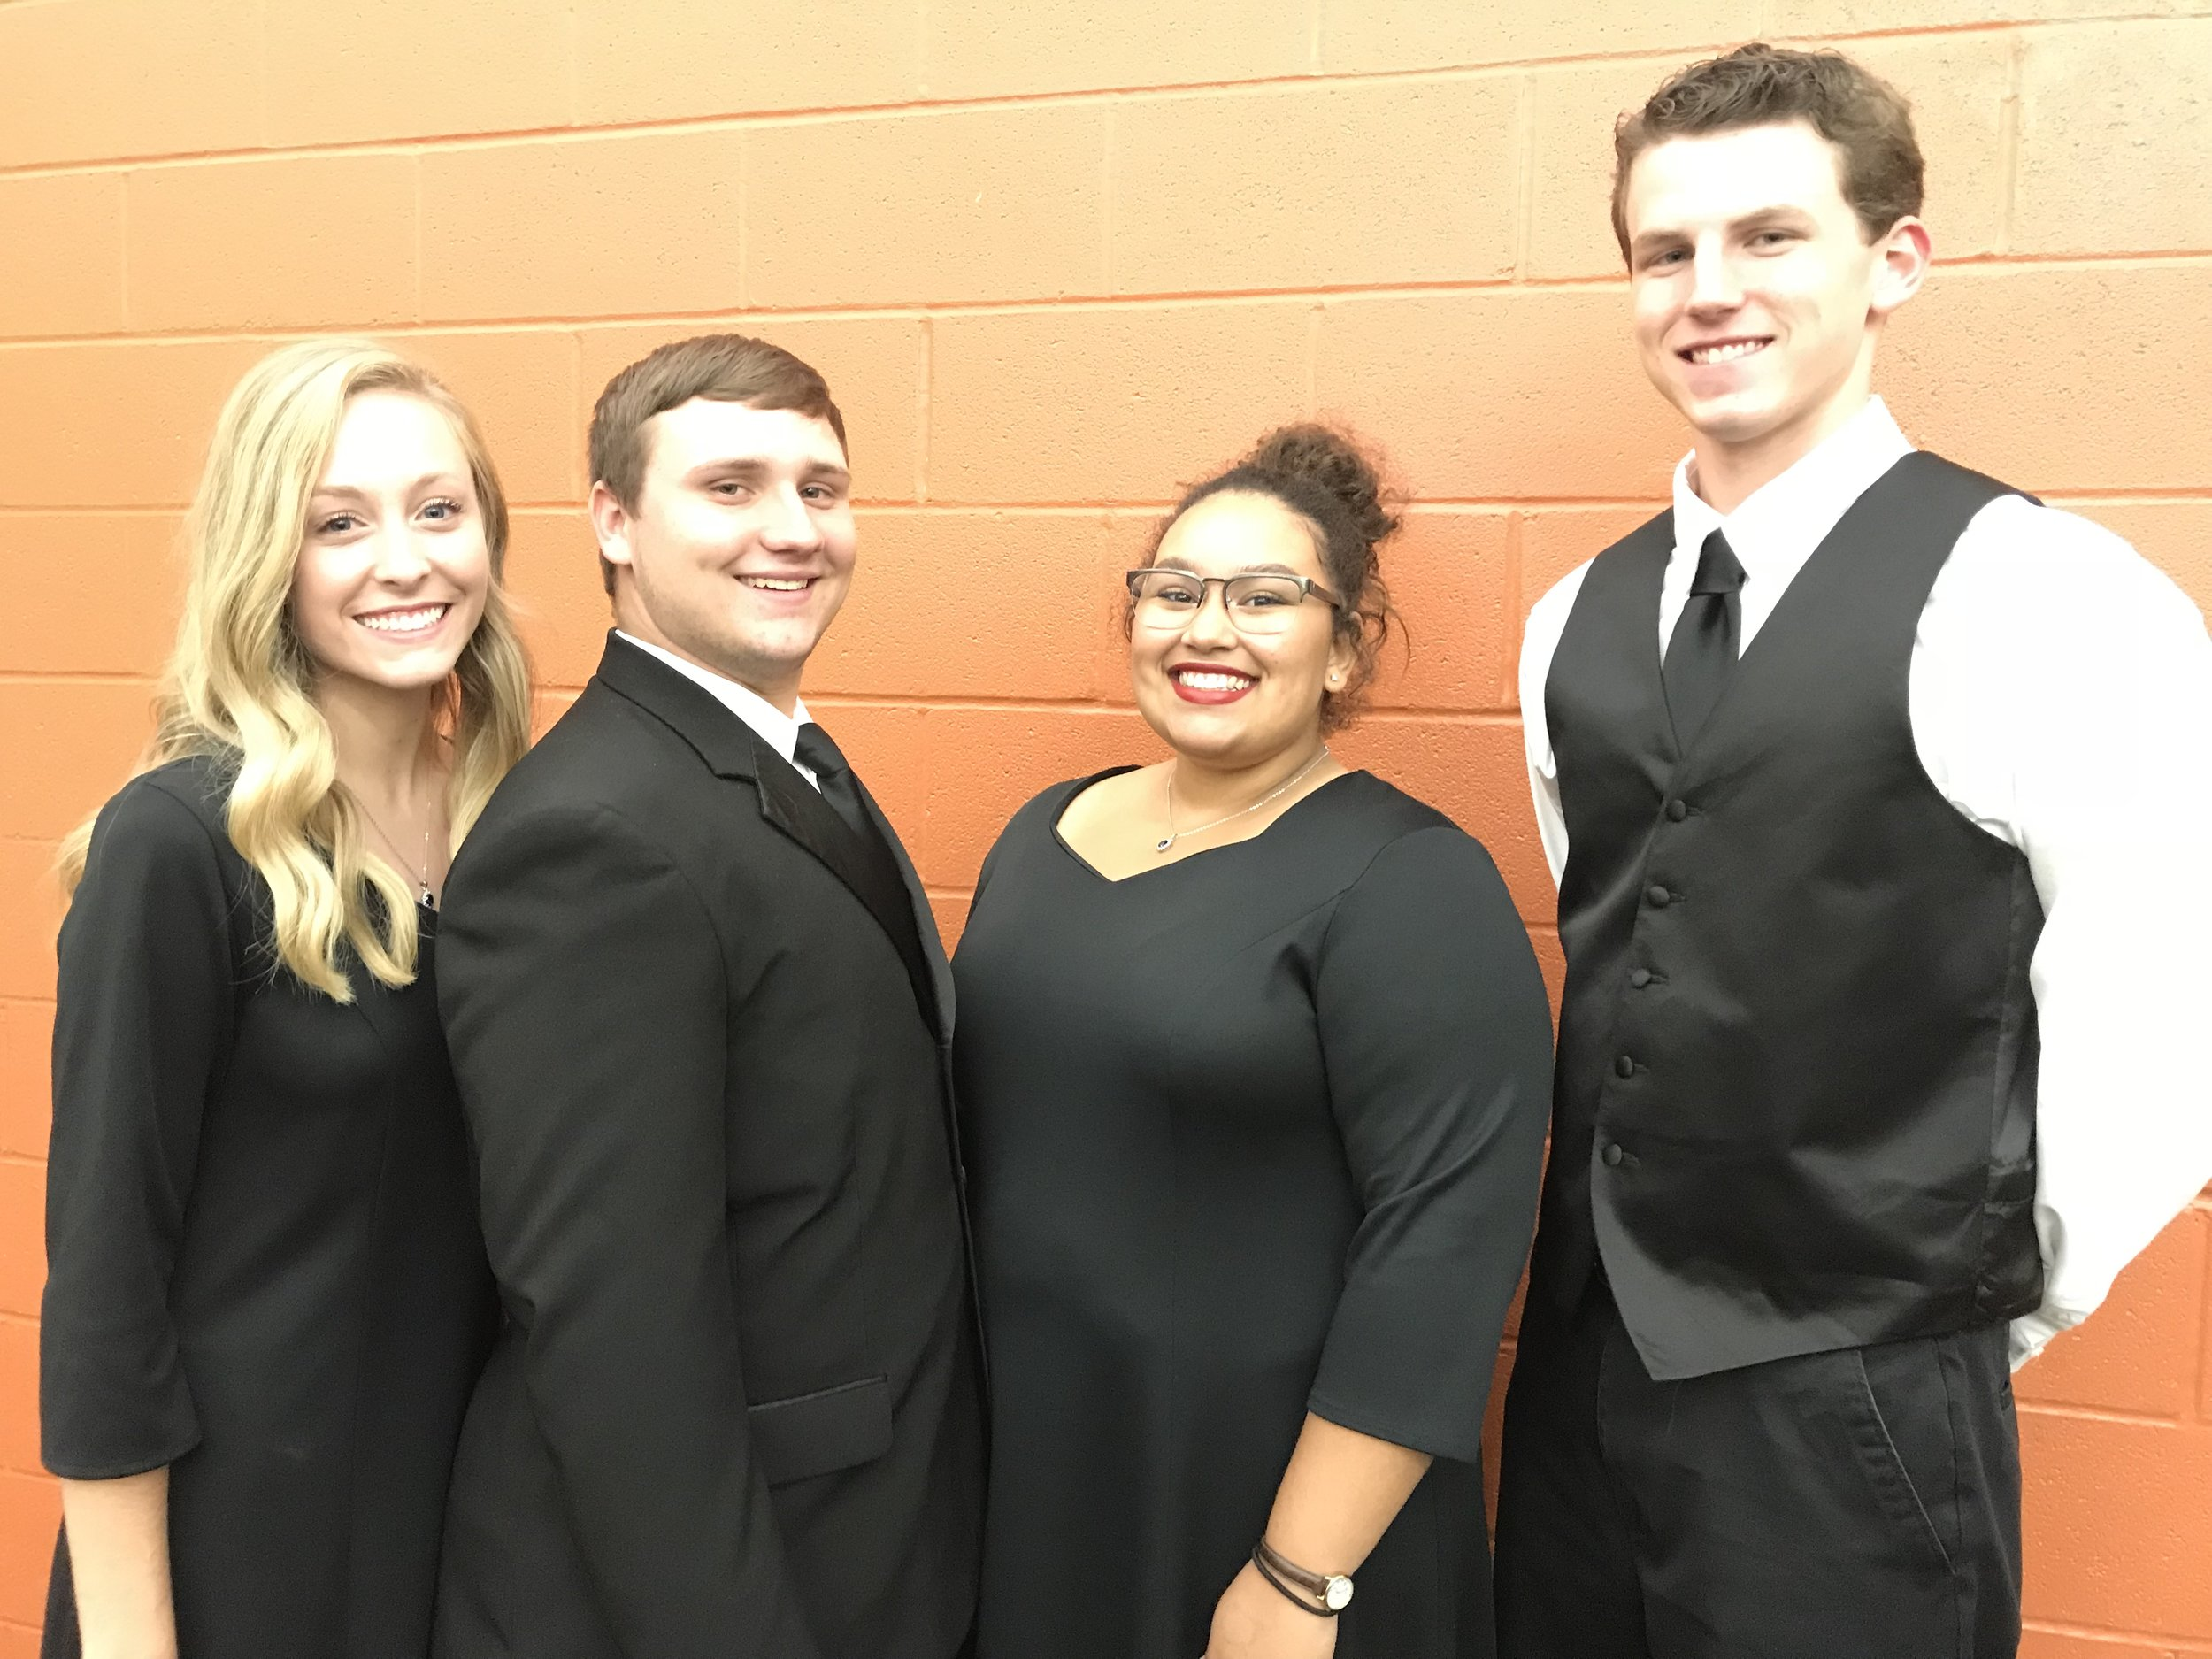 Pictured here SCA Seniors Emilie Moyer (left) and Alley Brown (right) were selected for the KC Metro Women's Honor Choir along with Senior Michael Werner (left) and Patrick Simpson (far right) who were selected for the KC Metro Men's Choir.